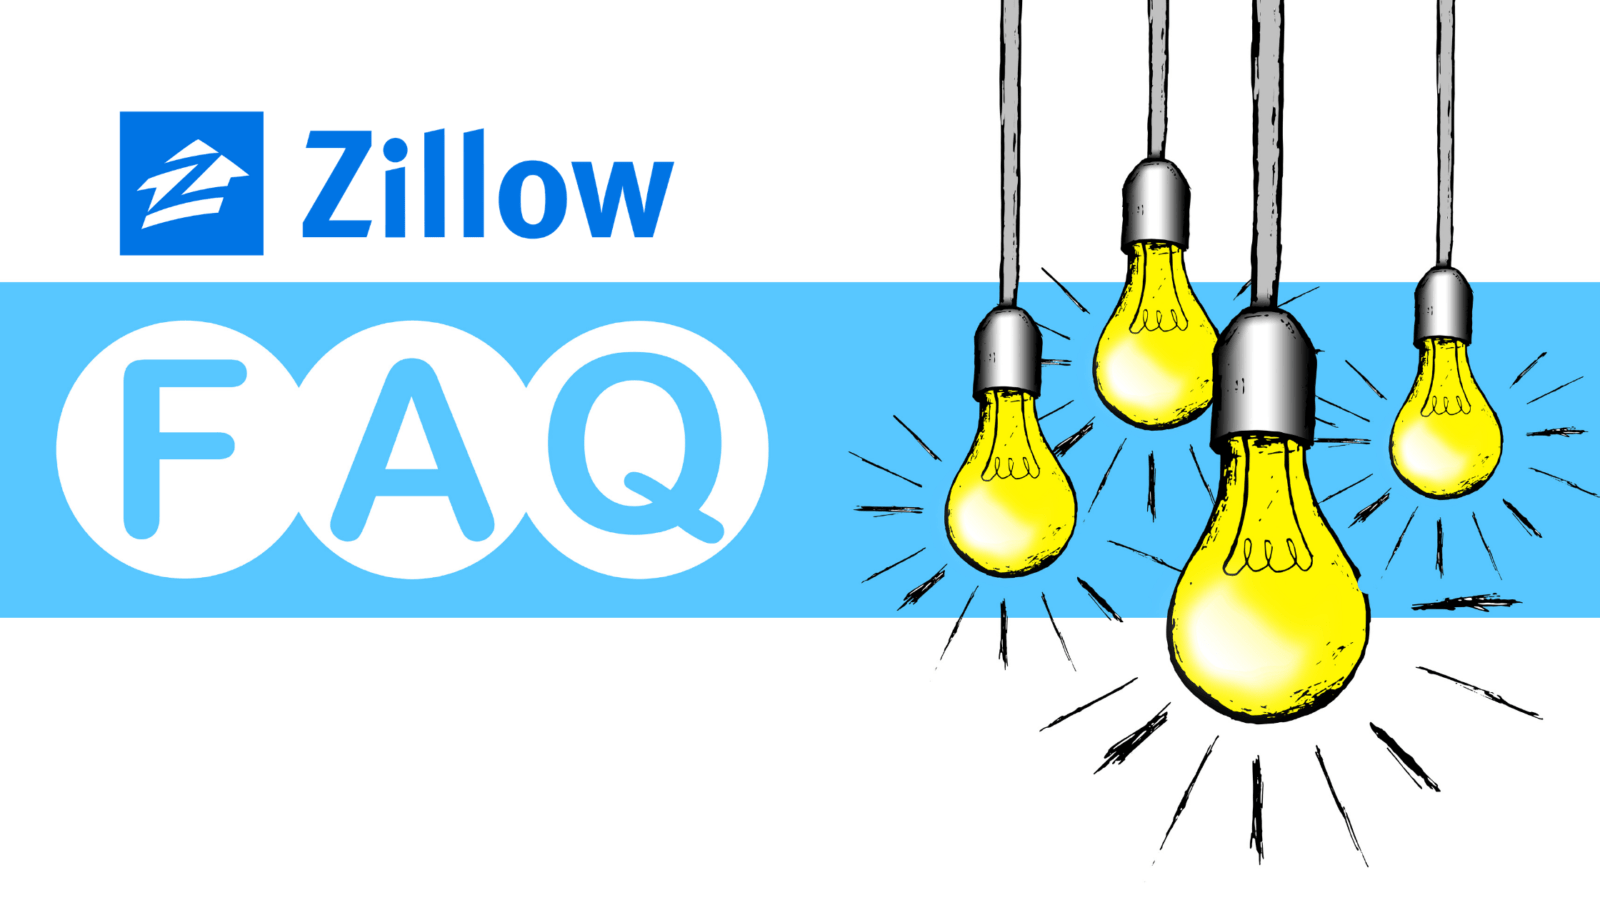 Zillow FAQ sign with illuminated lightbulbs hanging from the ceiling